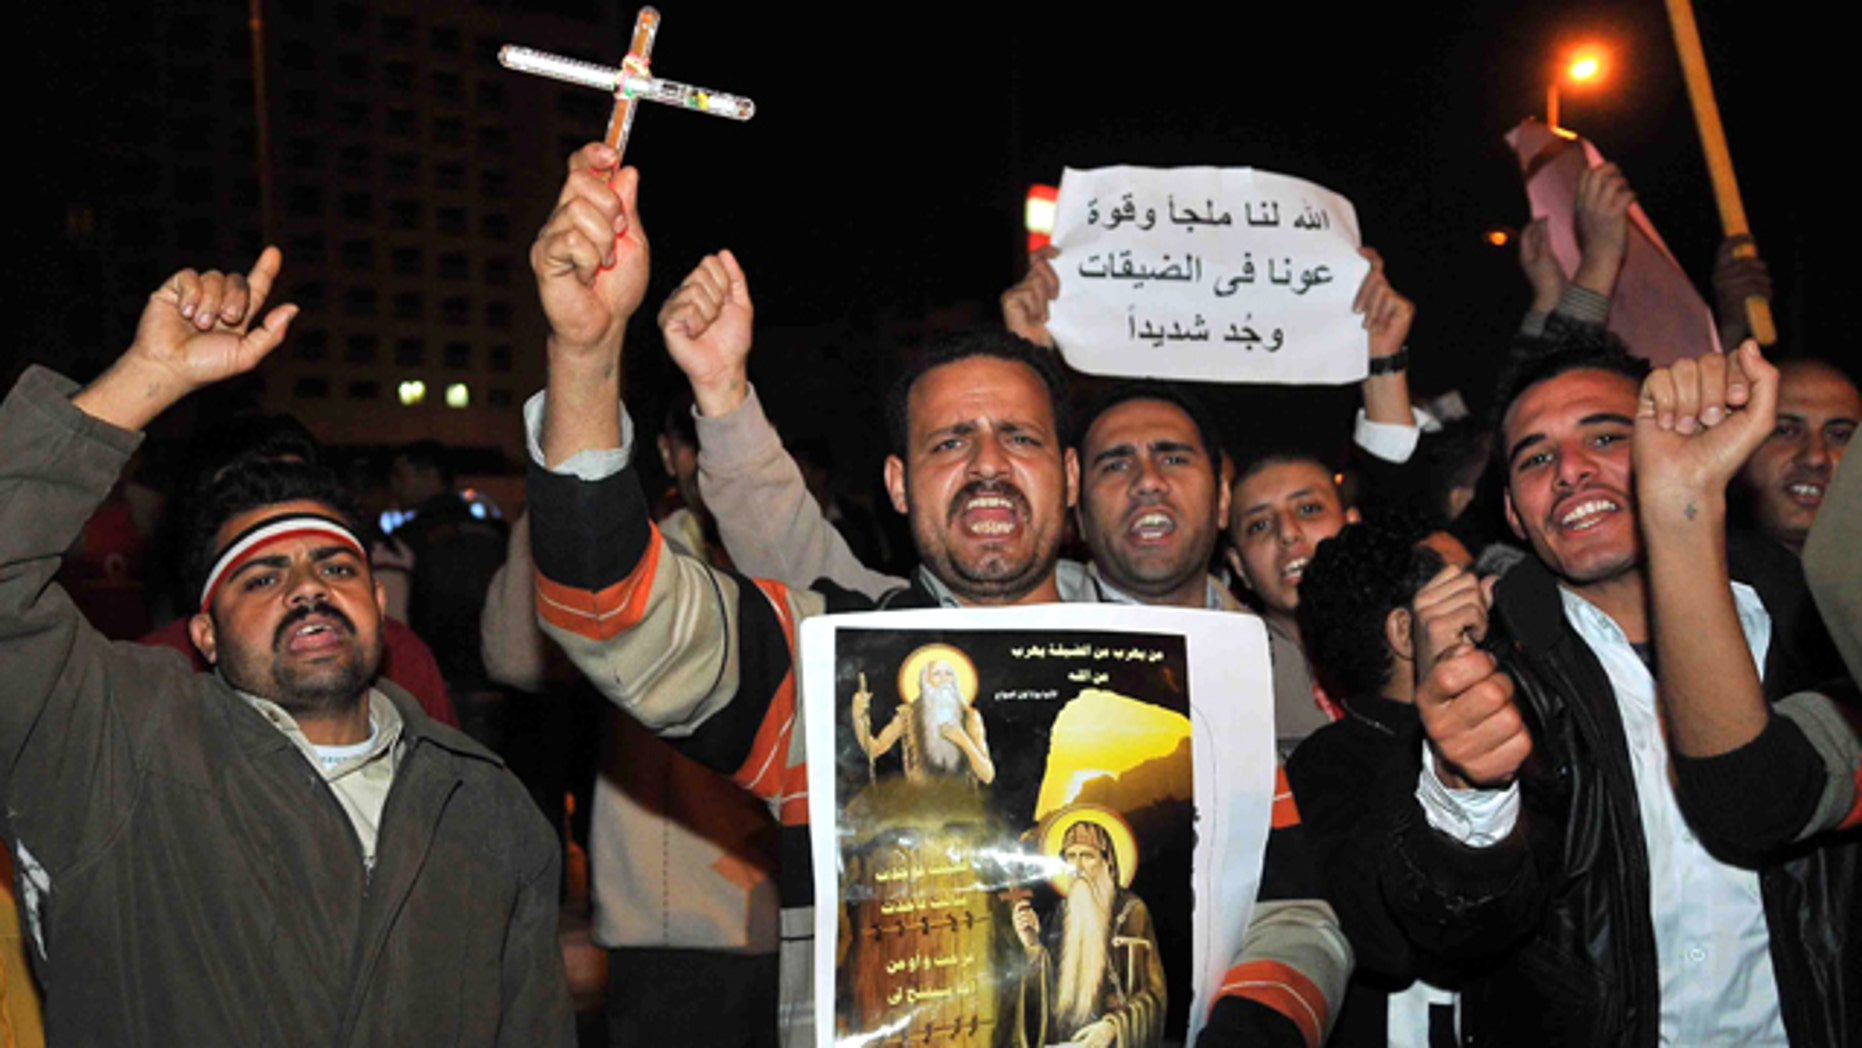 """March 8: Egyptian Copts carry a cross, a picture showing saints along a banner in Arabic that reads: """"God is our shelter and strength, he will help us in hard times"""" during a protest in downtown Cairo, Egypt."""